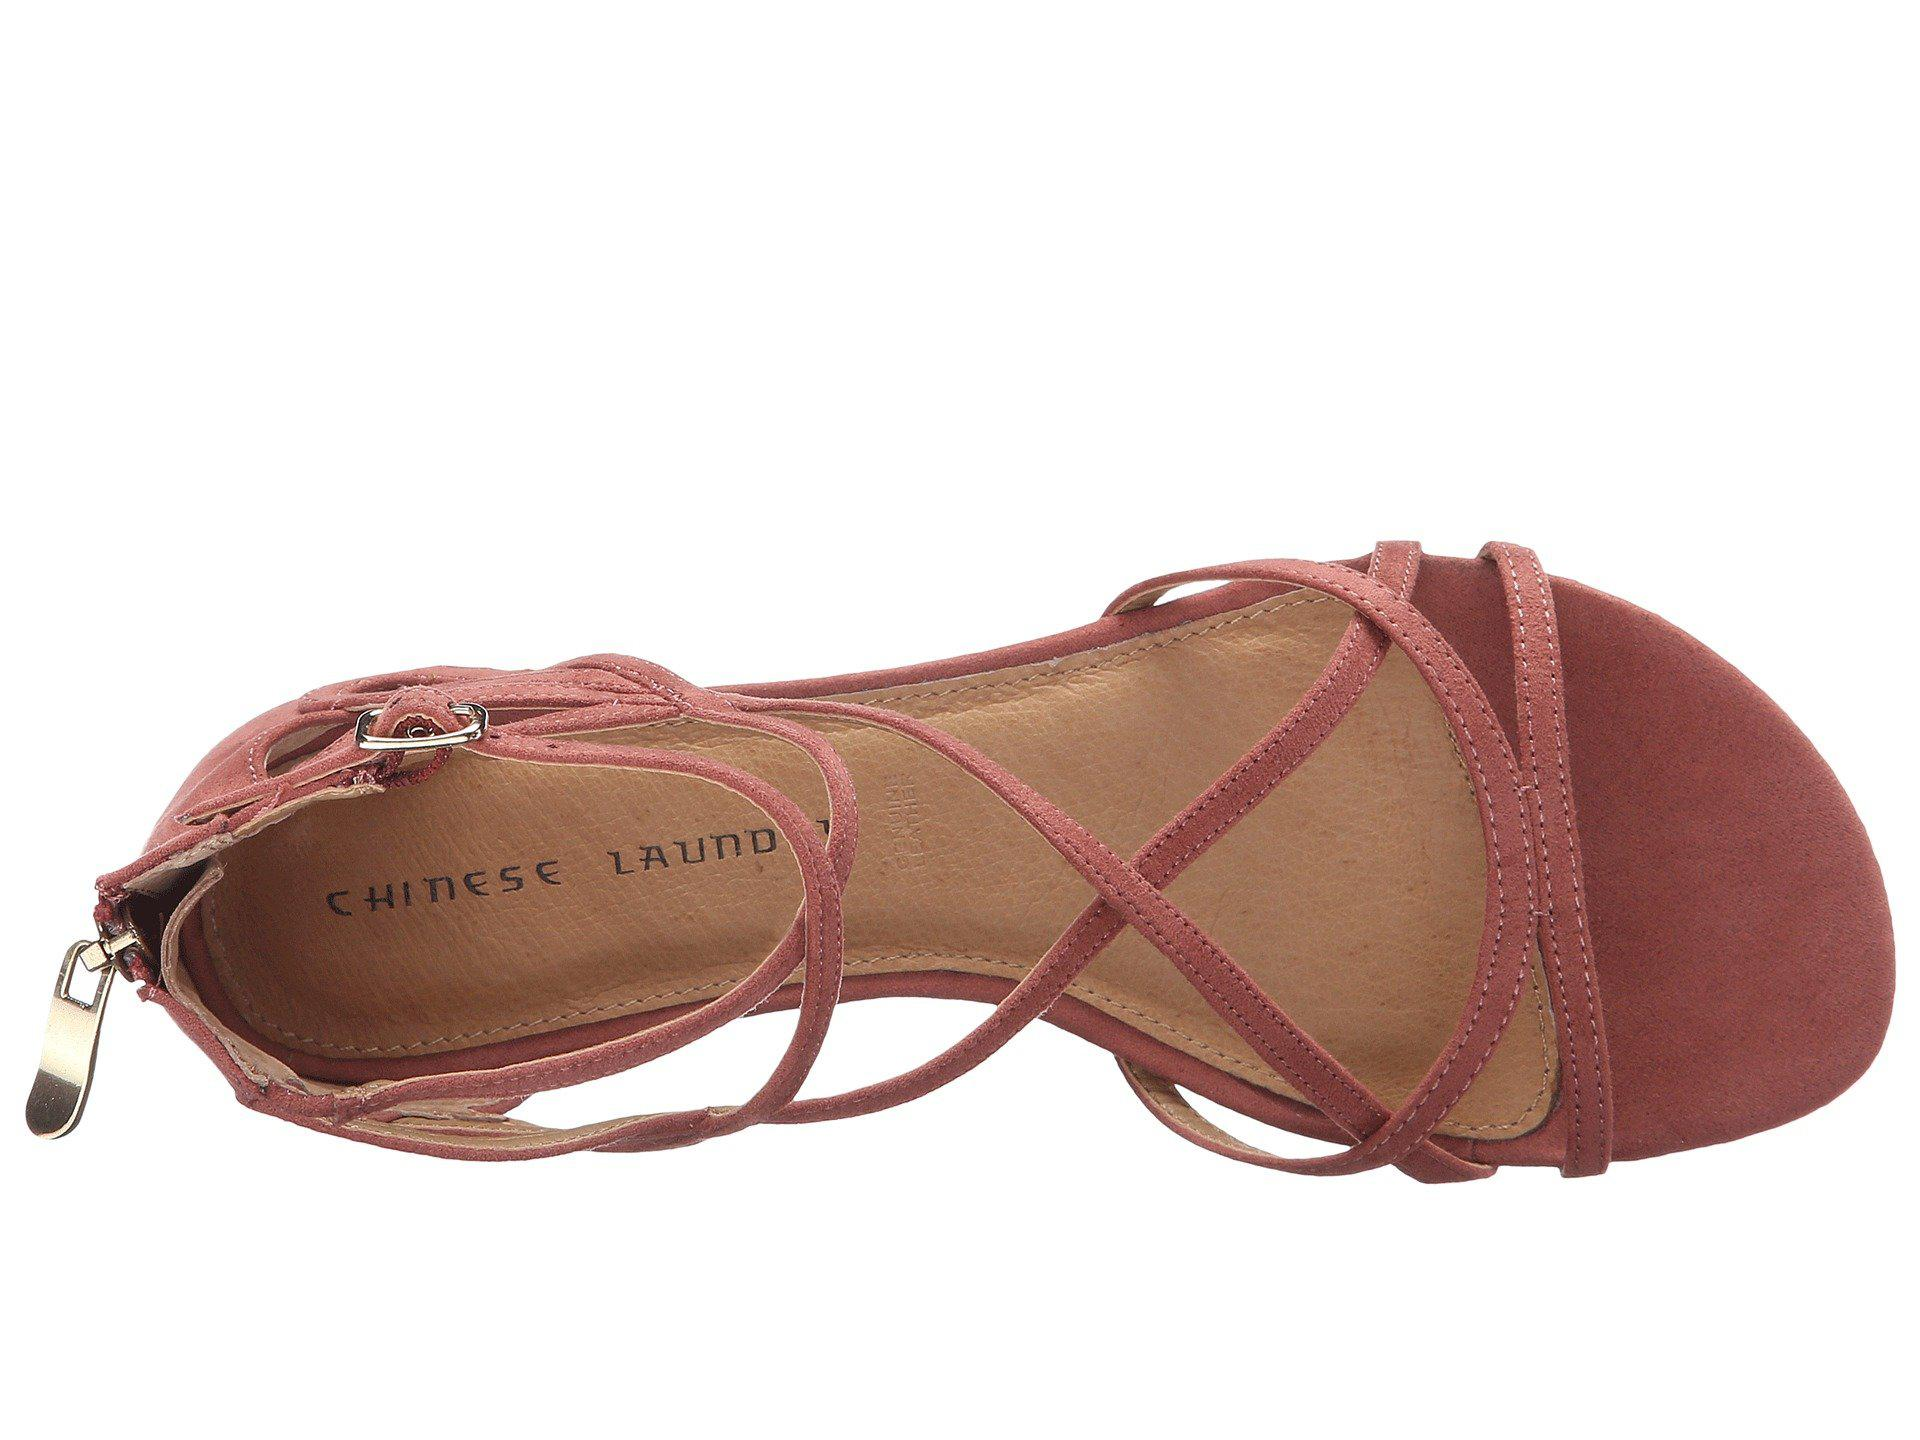 dfc0941ab570 Chinese Laundry - Multicolor Penny Sandal - Lyst. View fullscreen